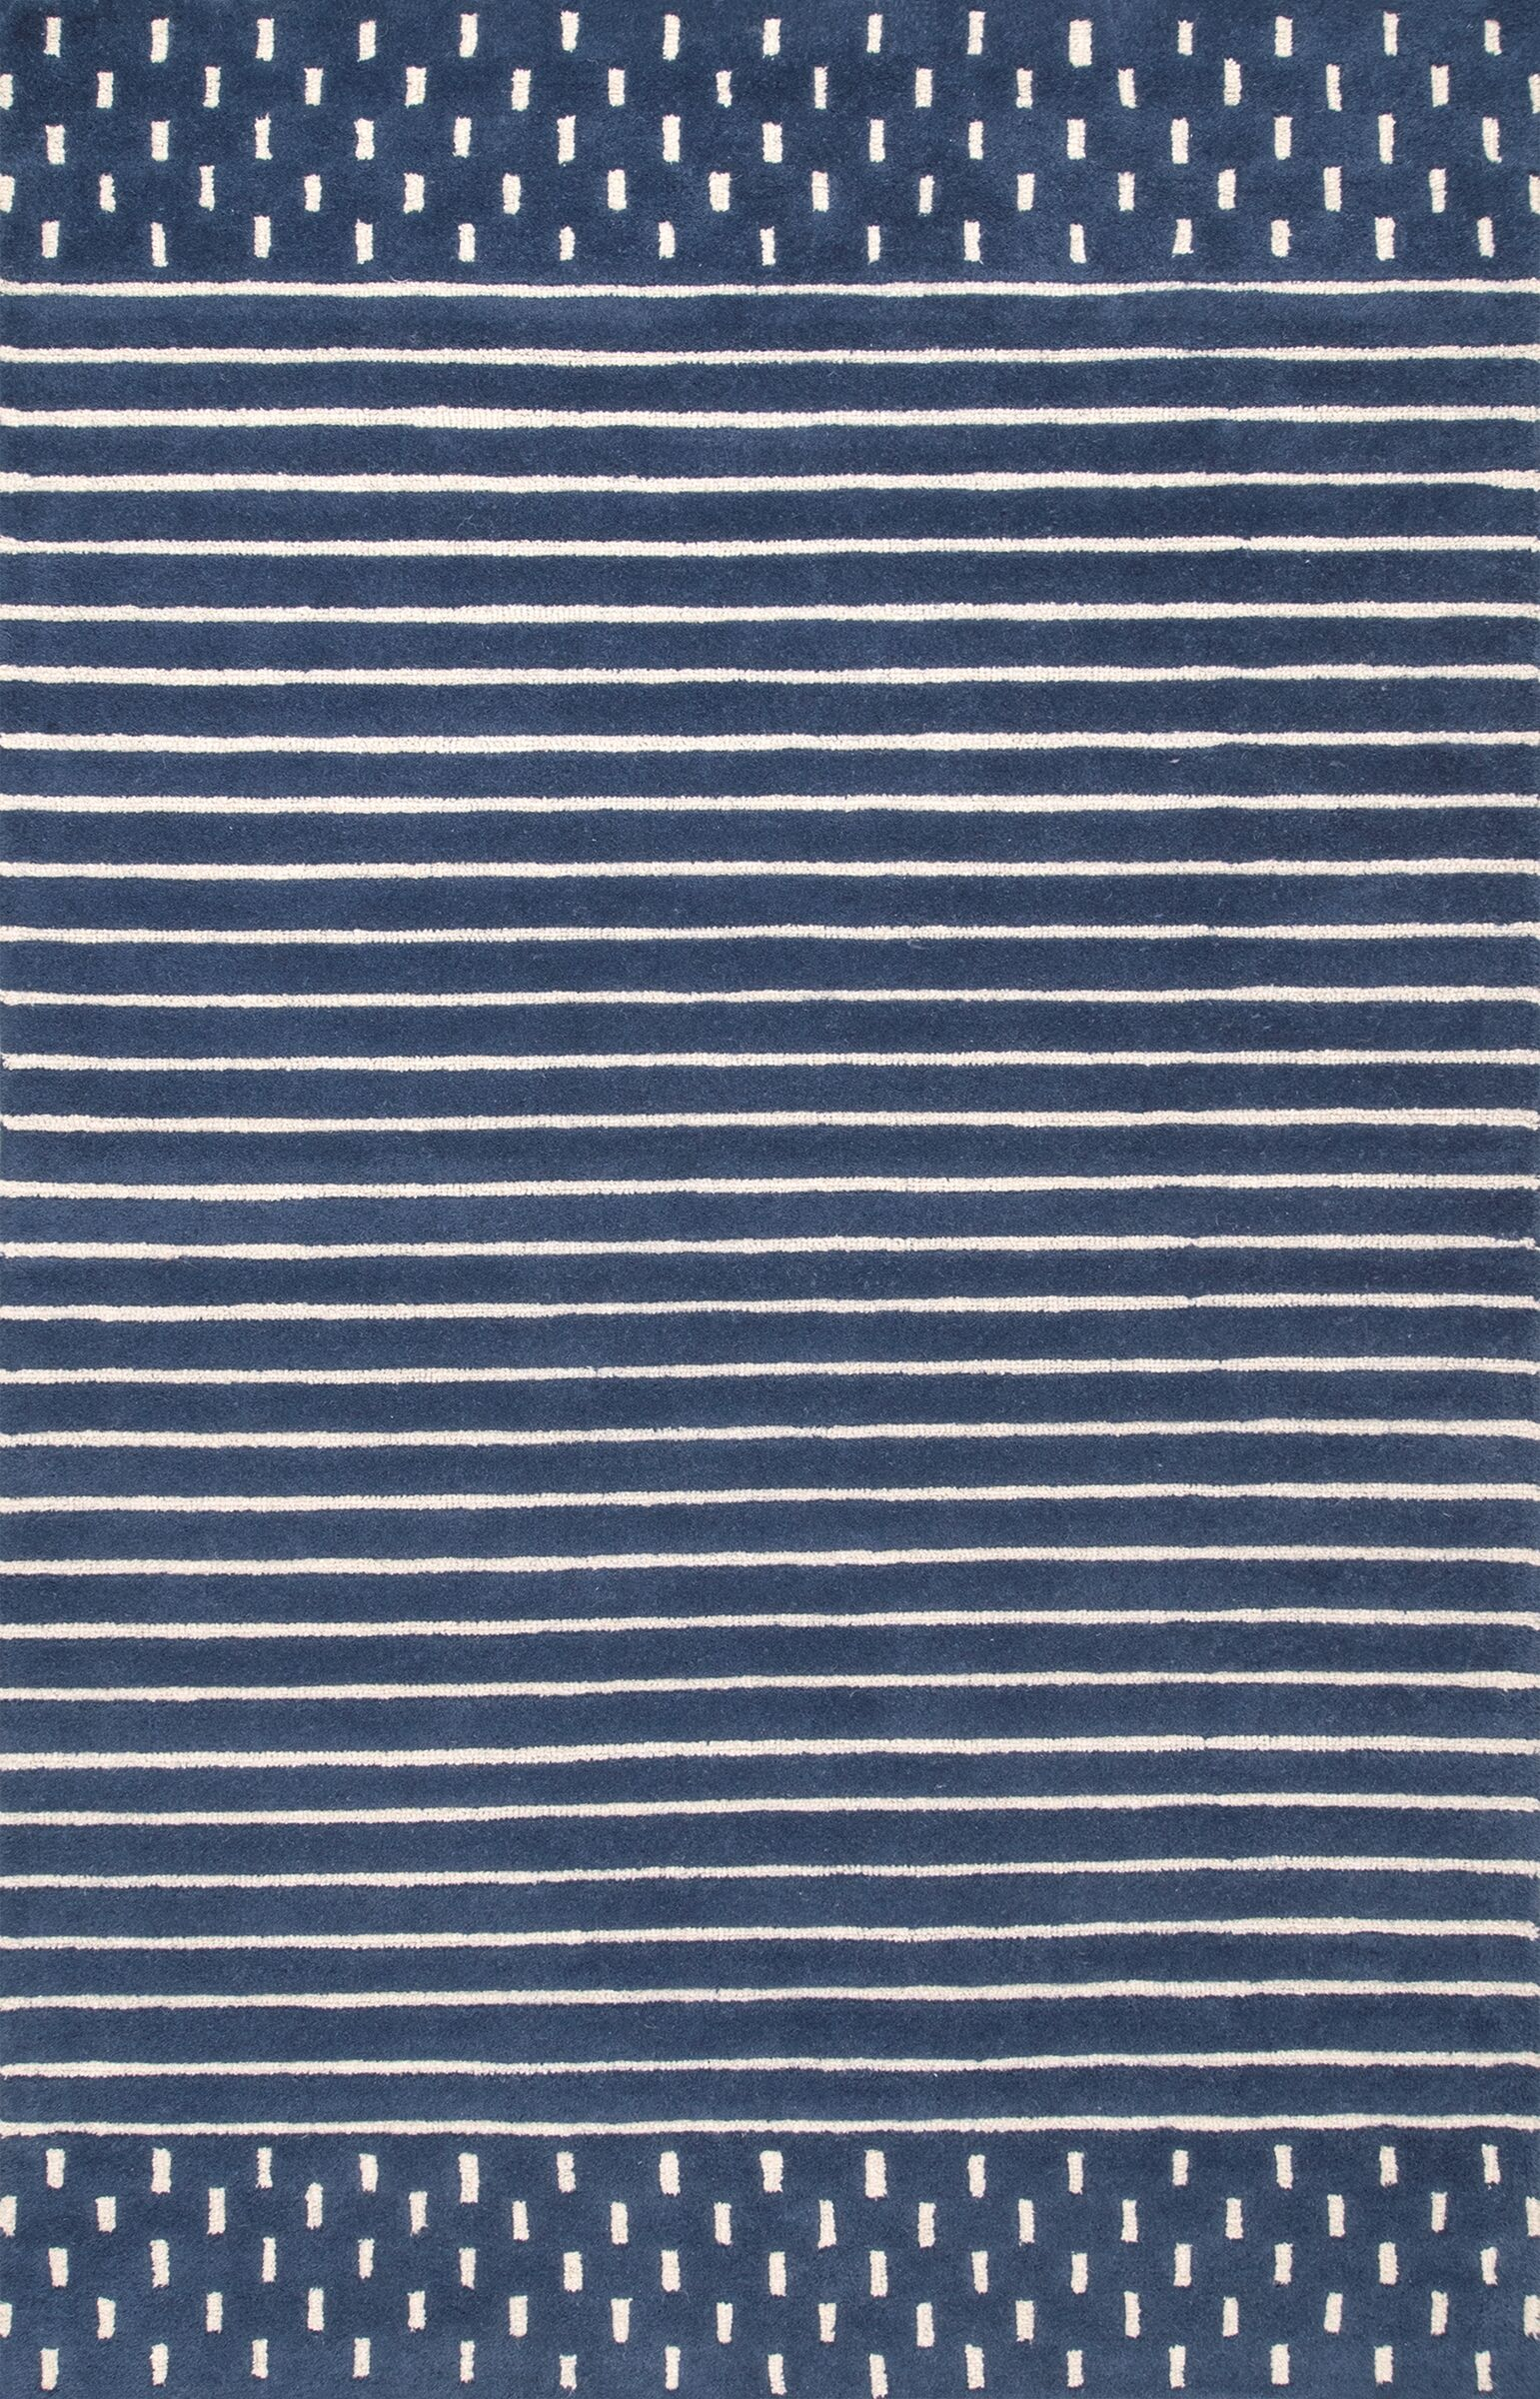 Badger Hand Woven Wool Navy Area Rug Rug Size: Rectangle 5' x 8'